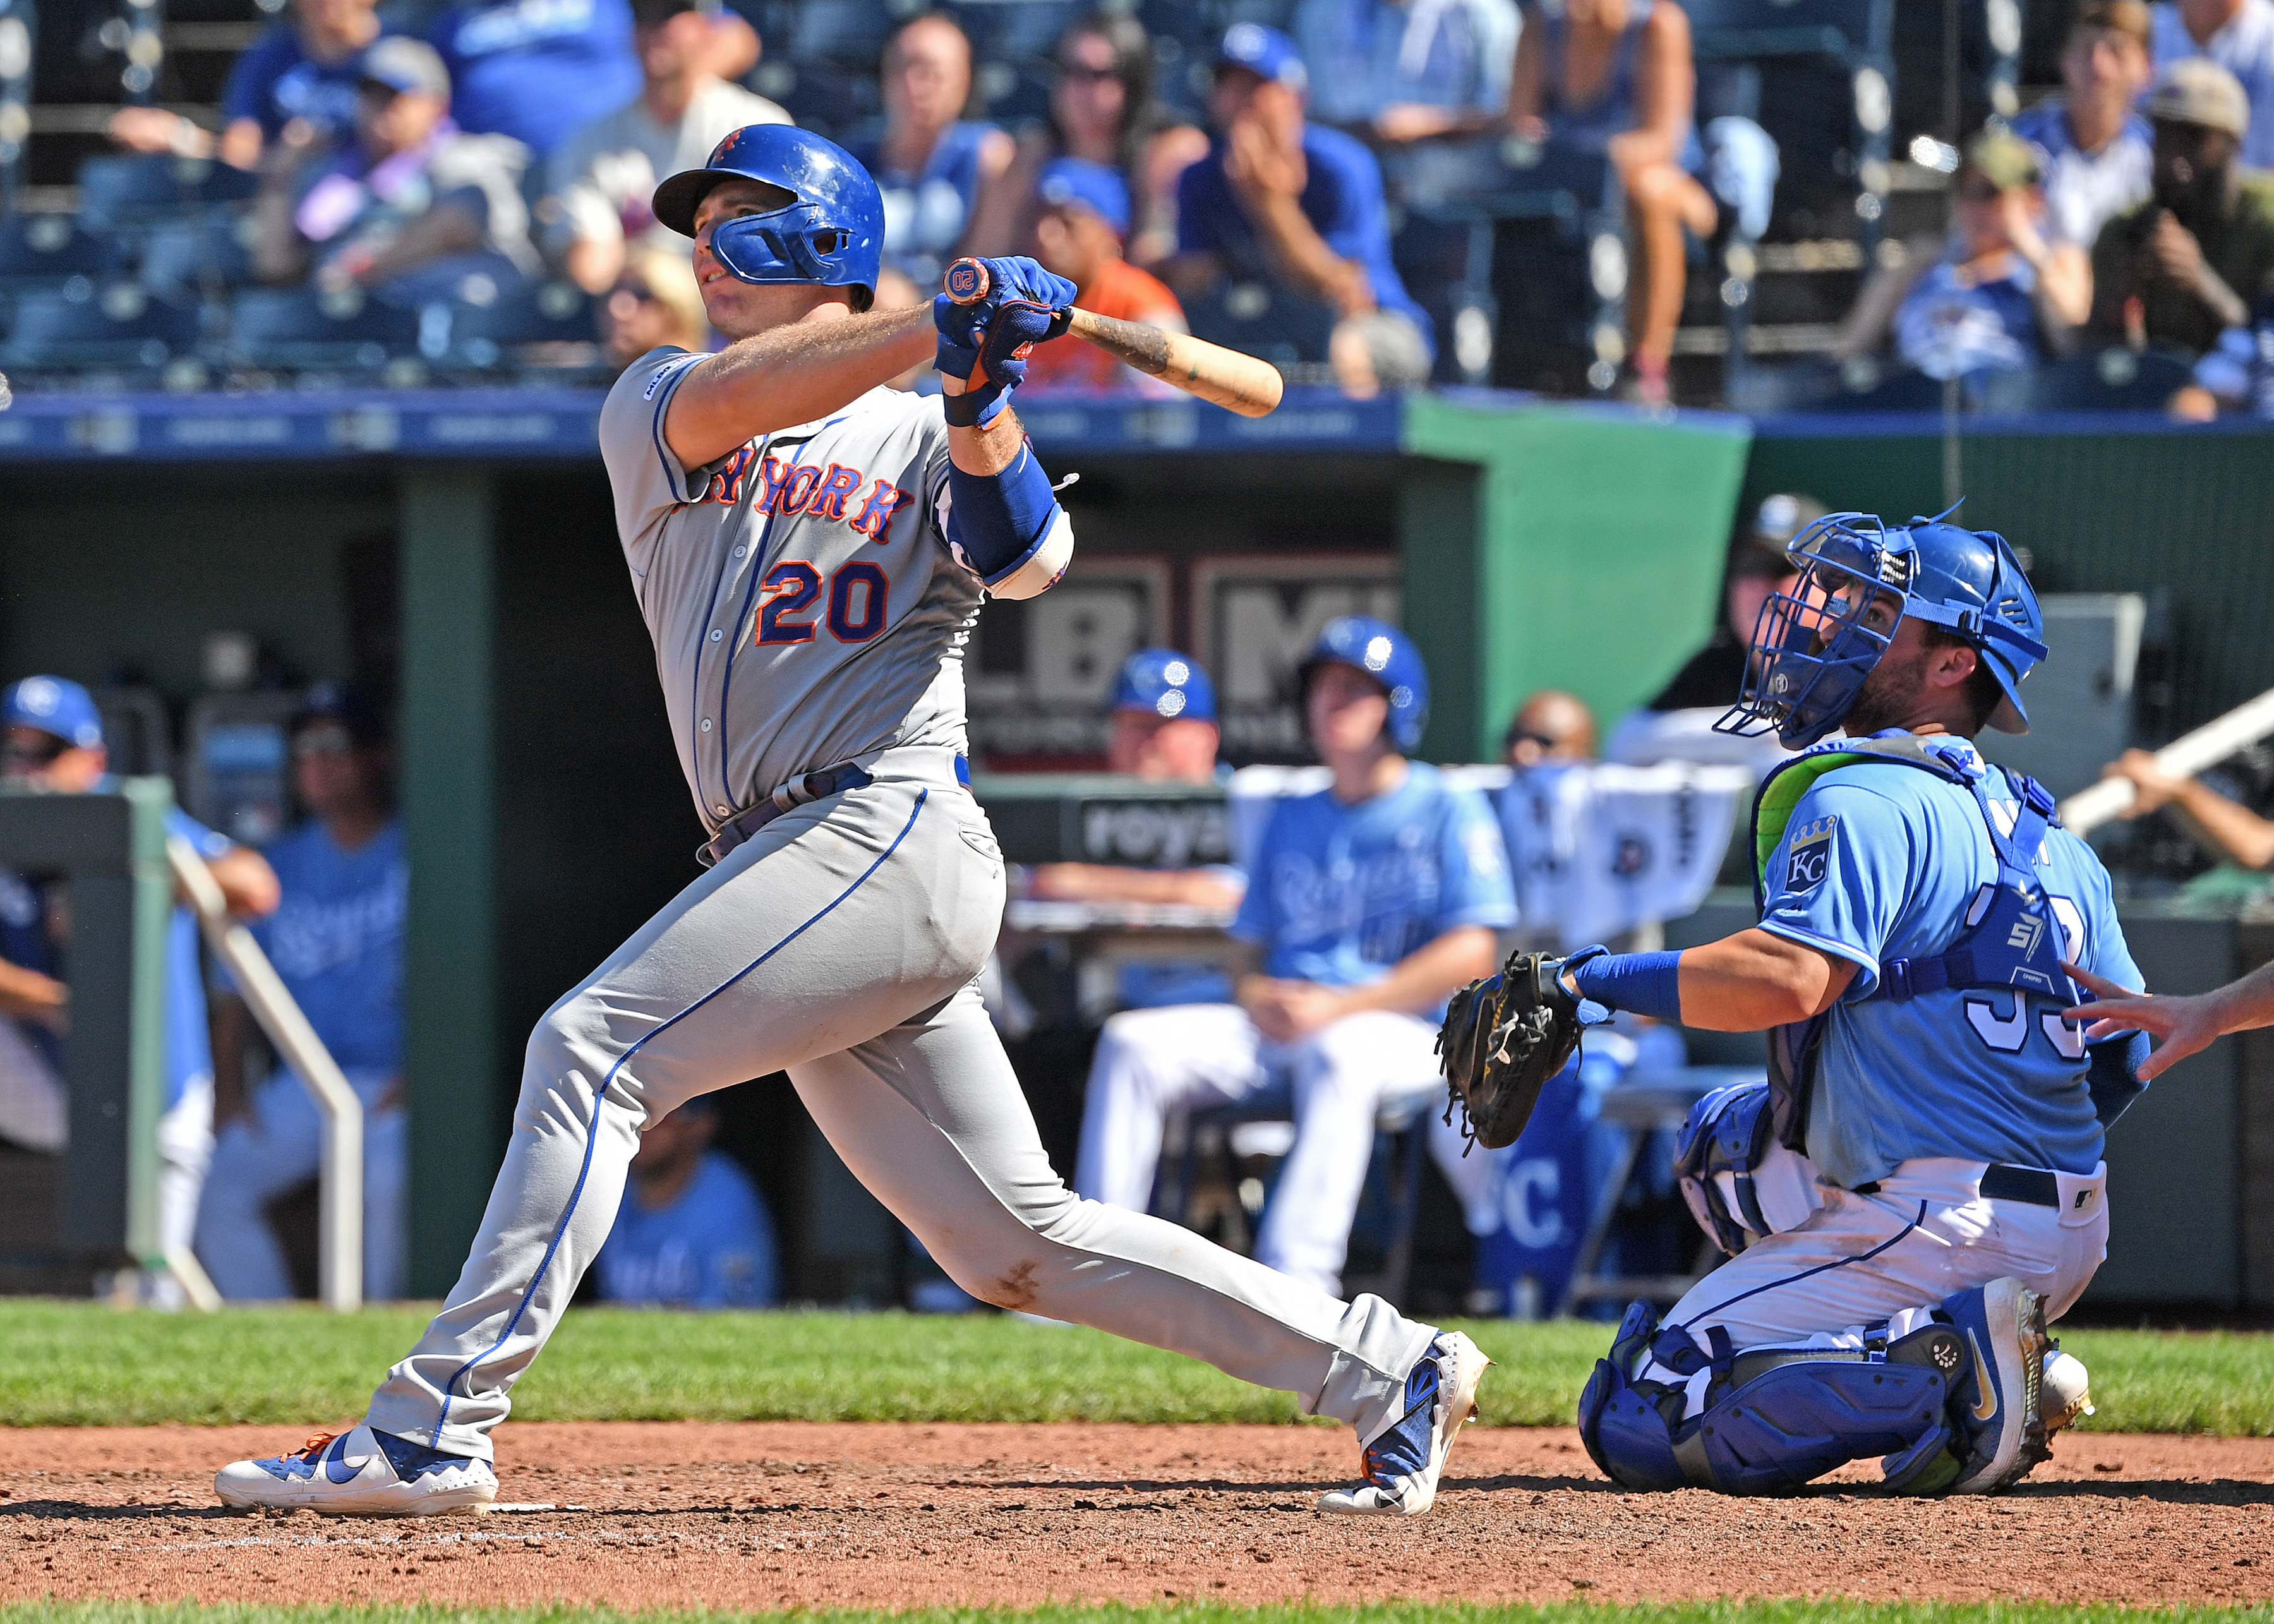 8/20/19 Game Preview: Cleveland Indians at New York Mets